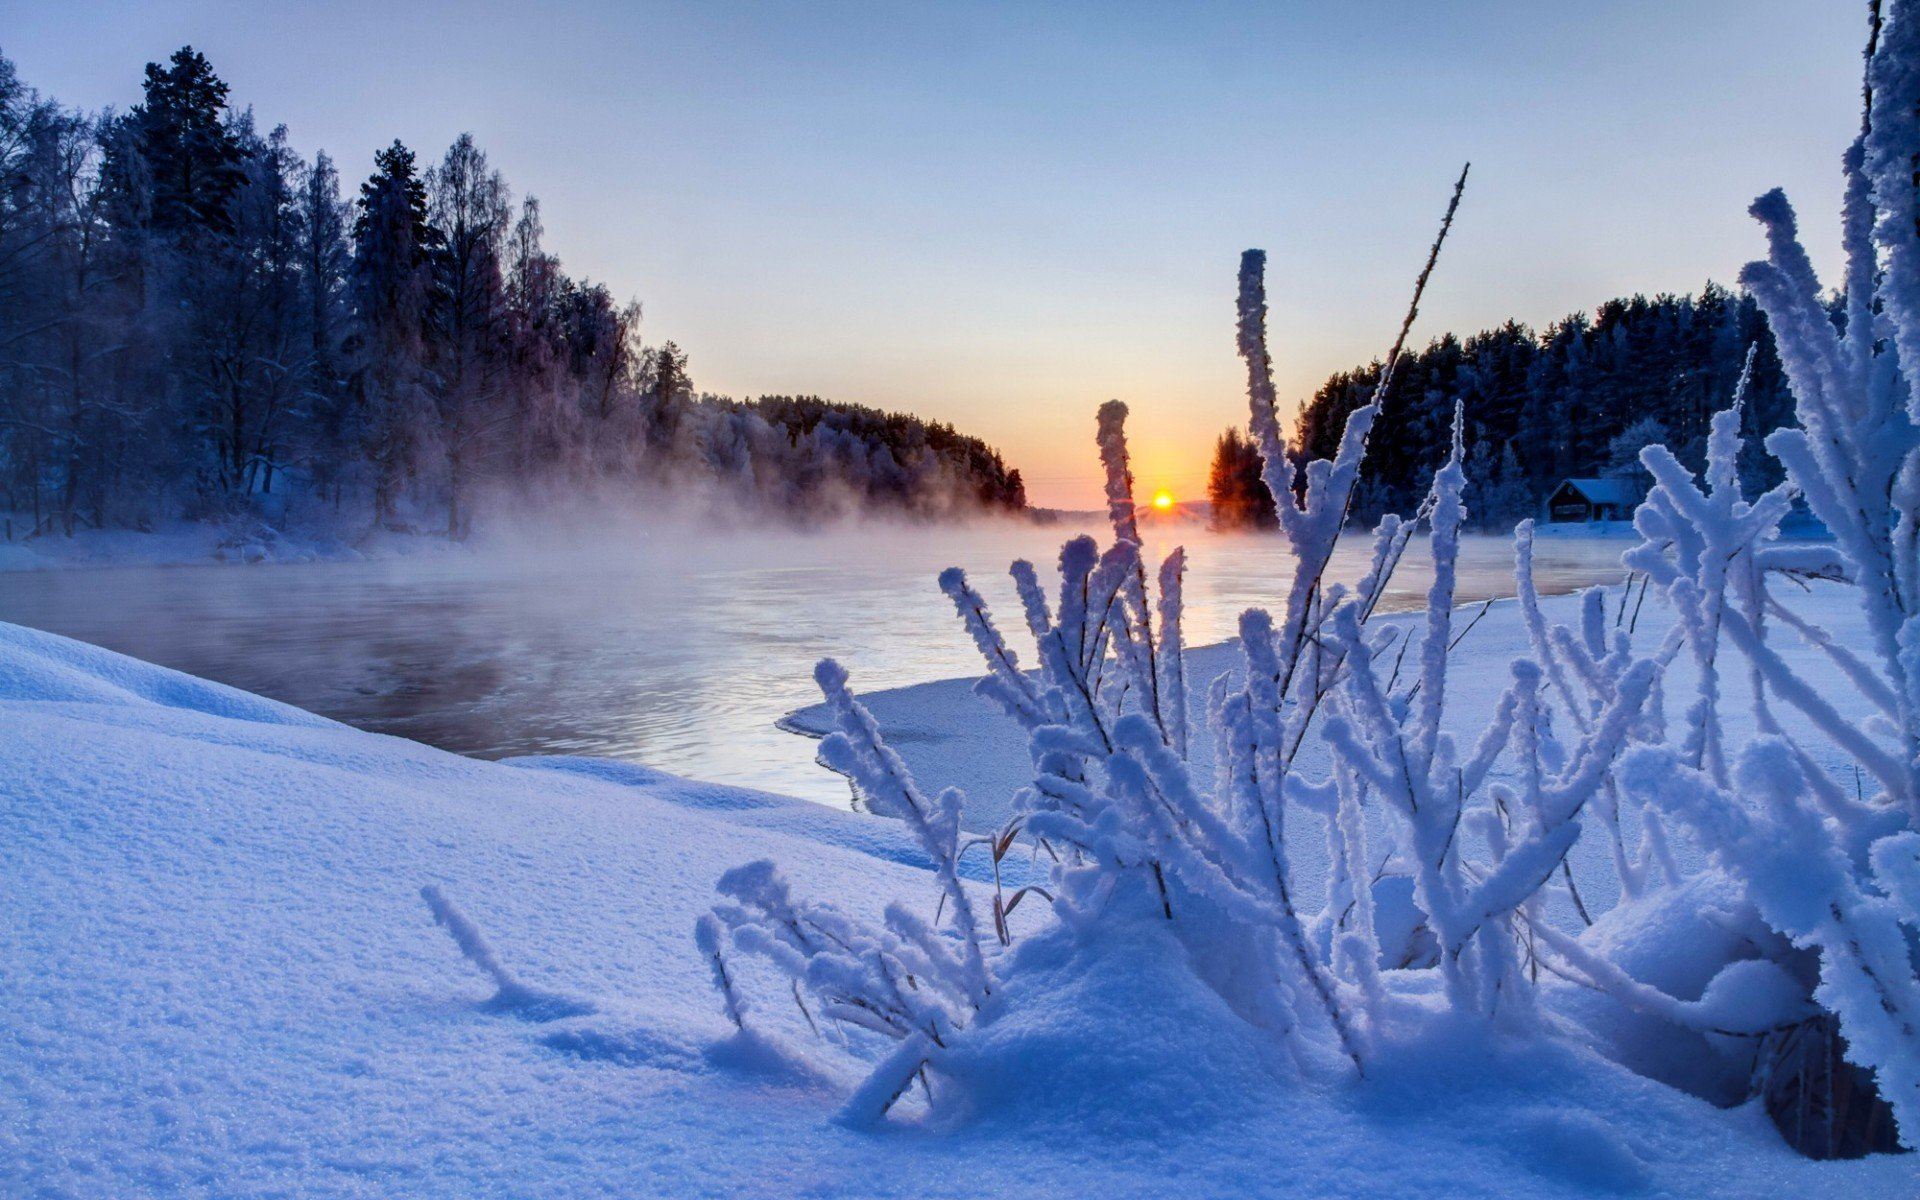 Widescreen Winter Sunset Wallpapers Images amp Pictures   Becuo 1920x1200